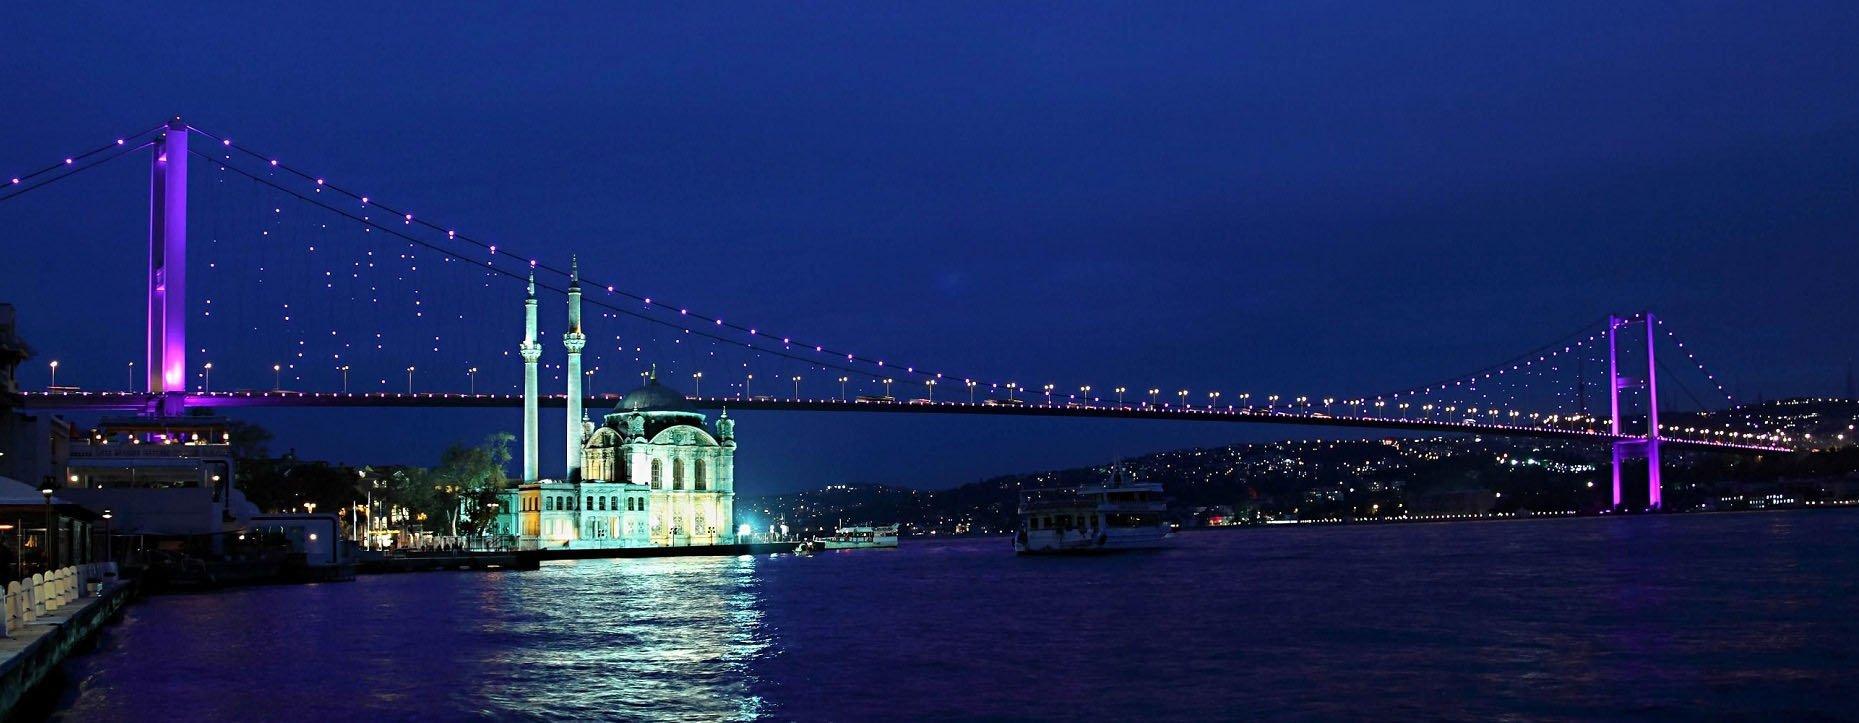 Ortakoy-and-Bosphorus-Bridge